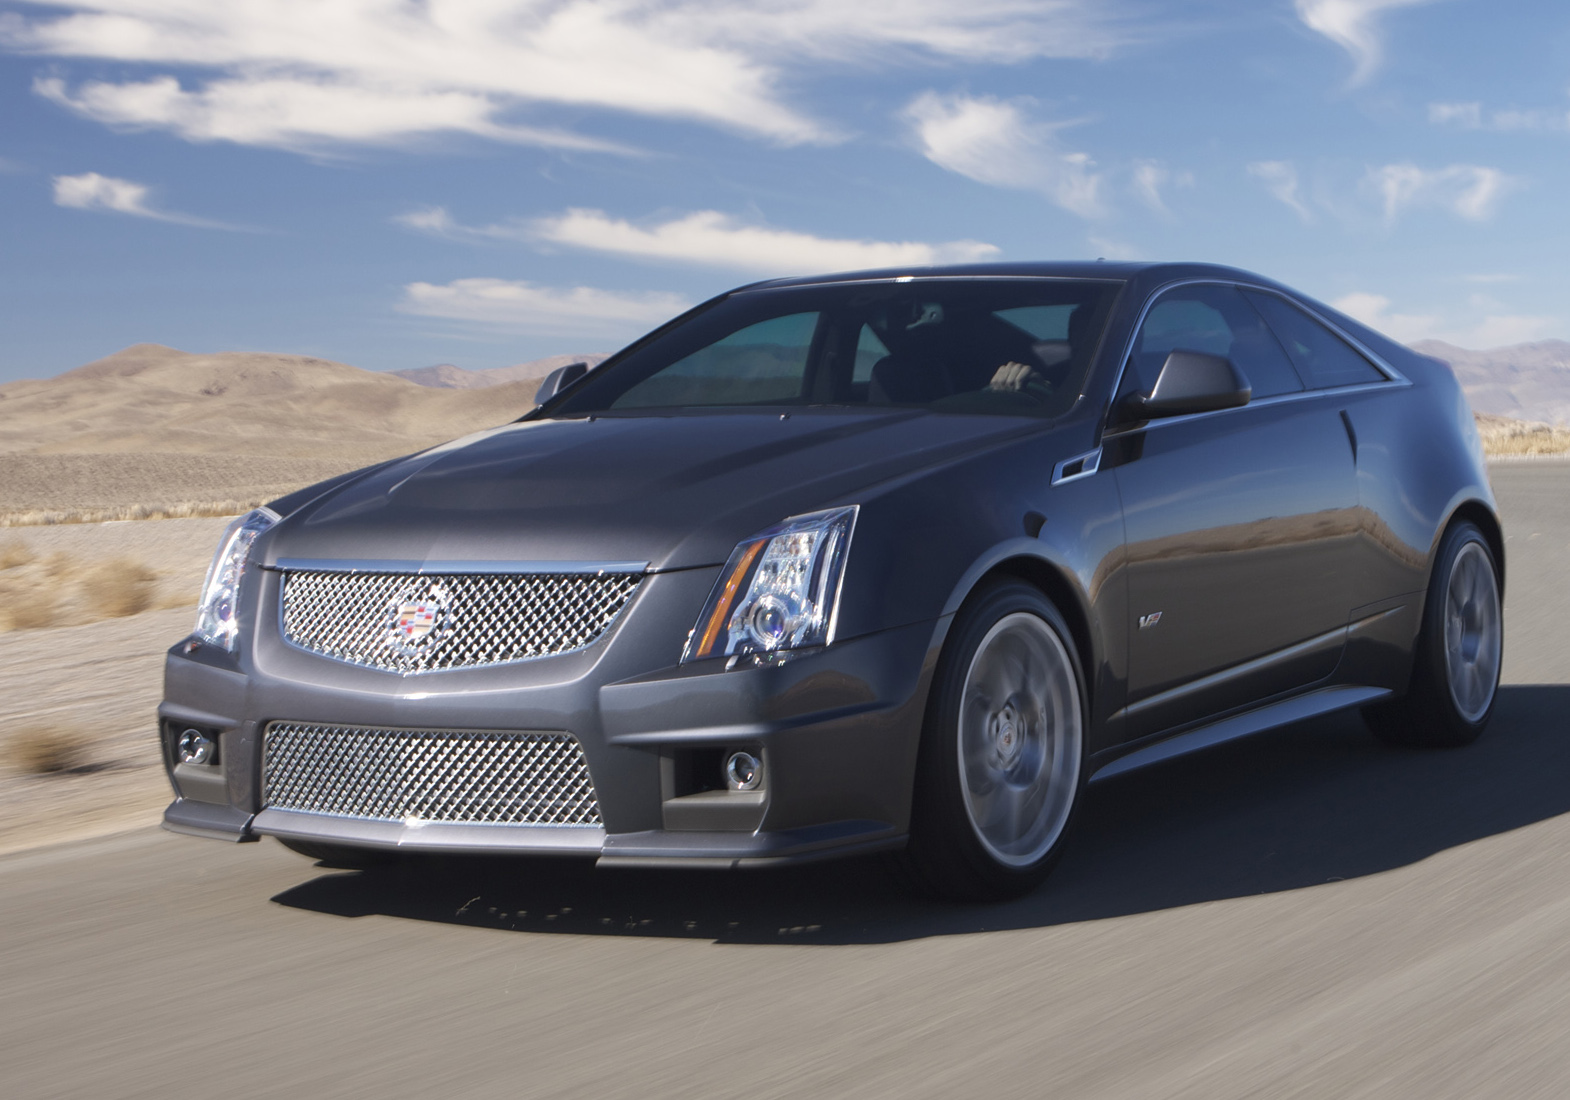 2014 Cadillac Cts Coupe #18